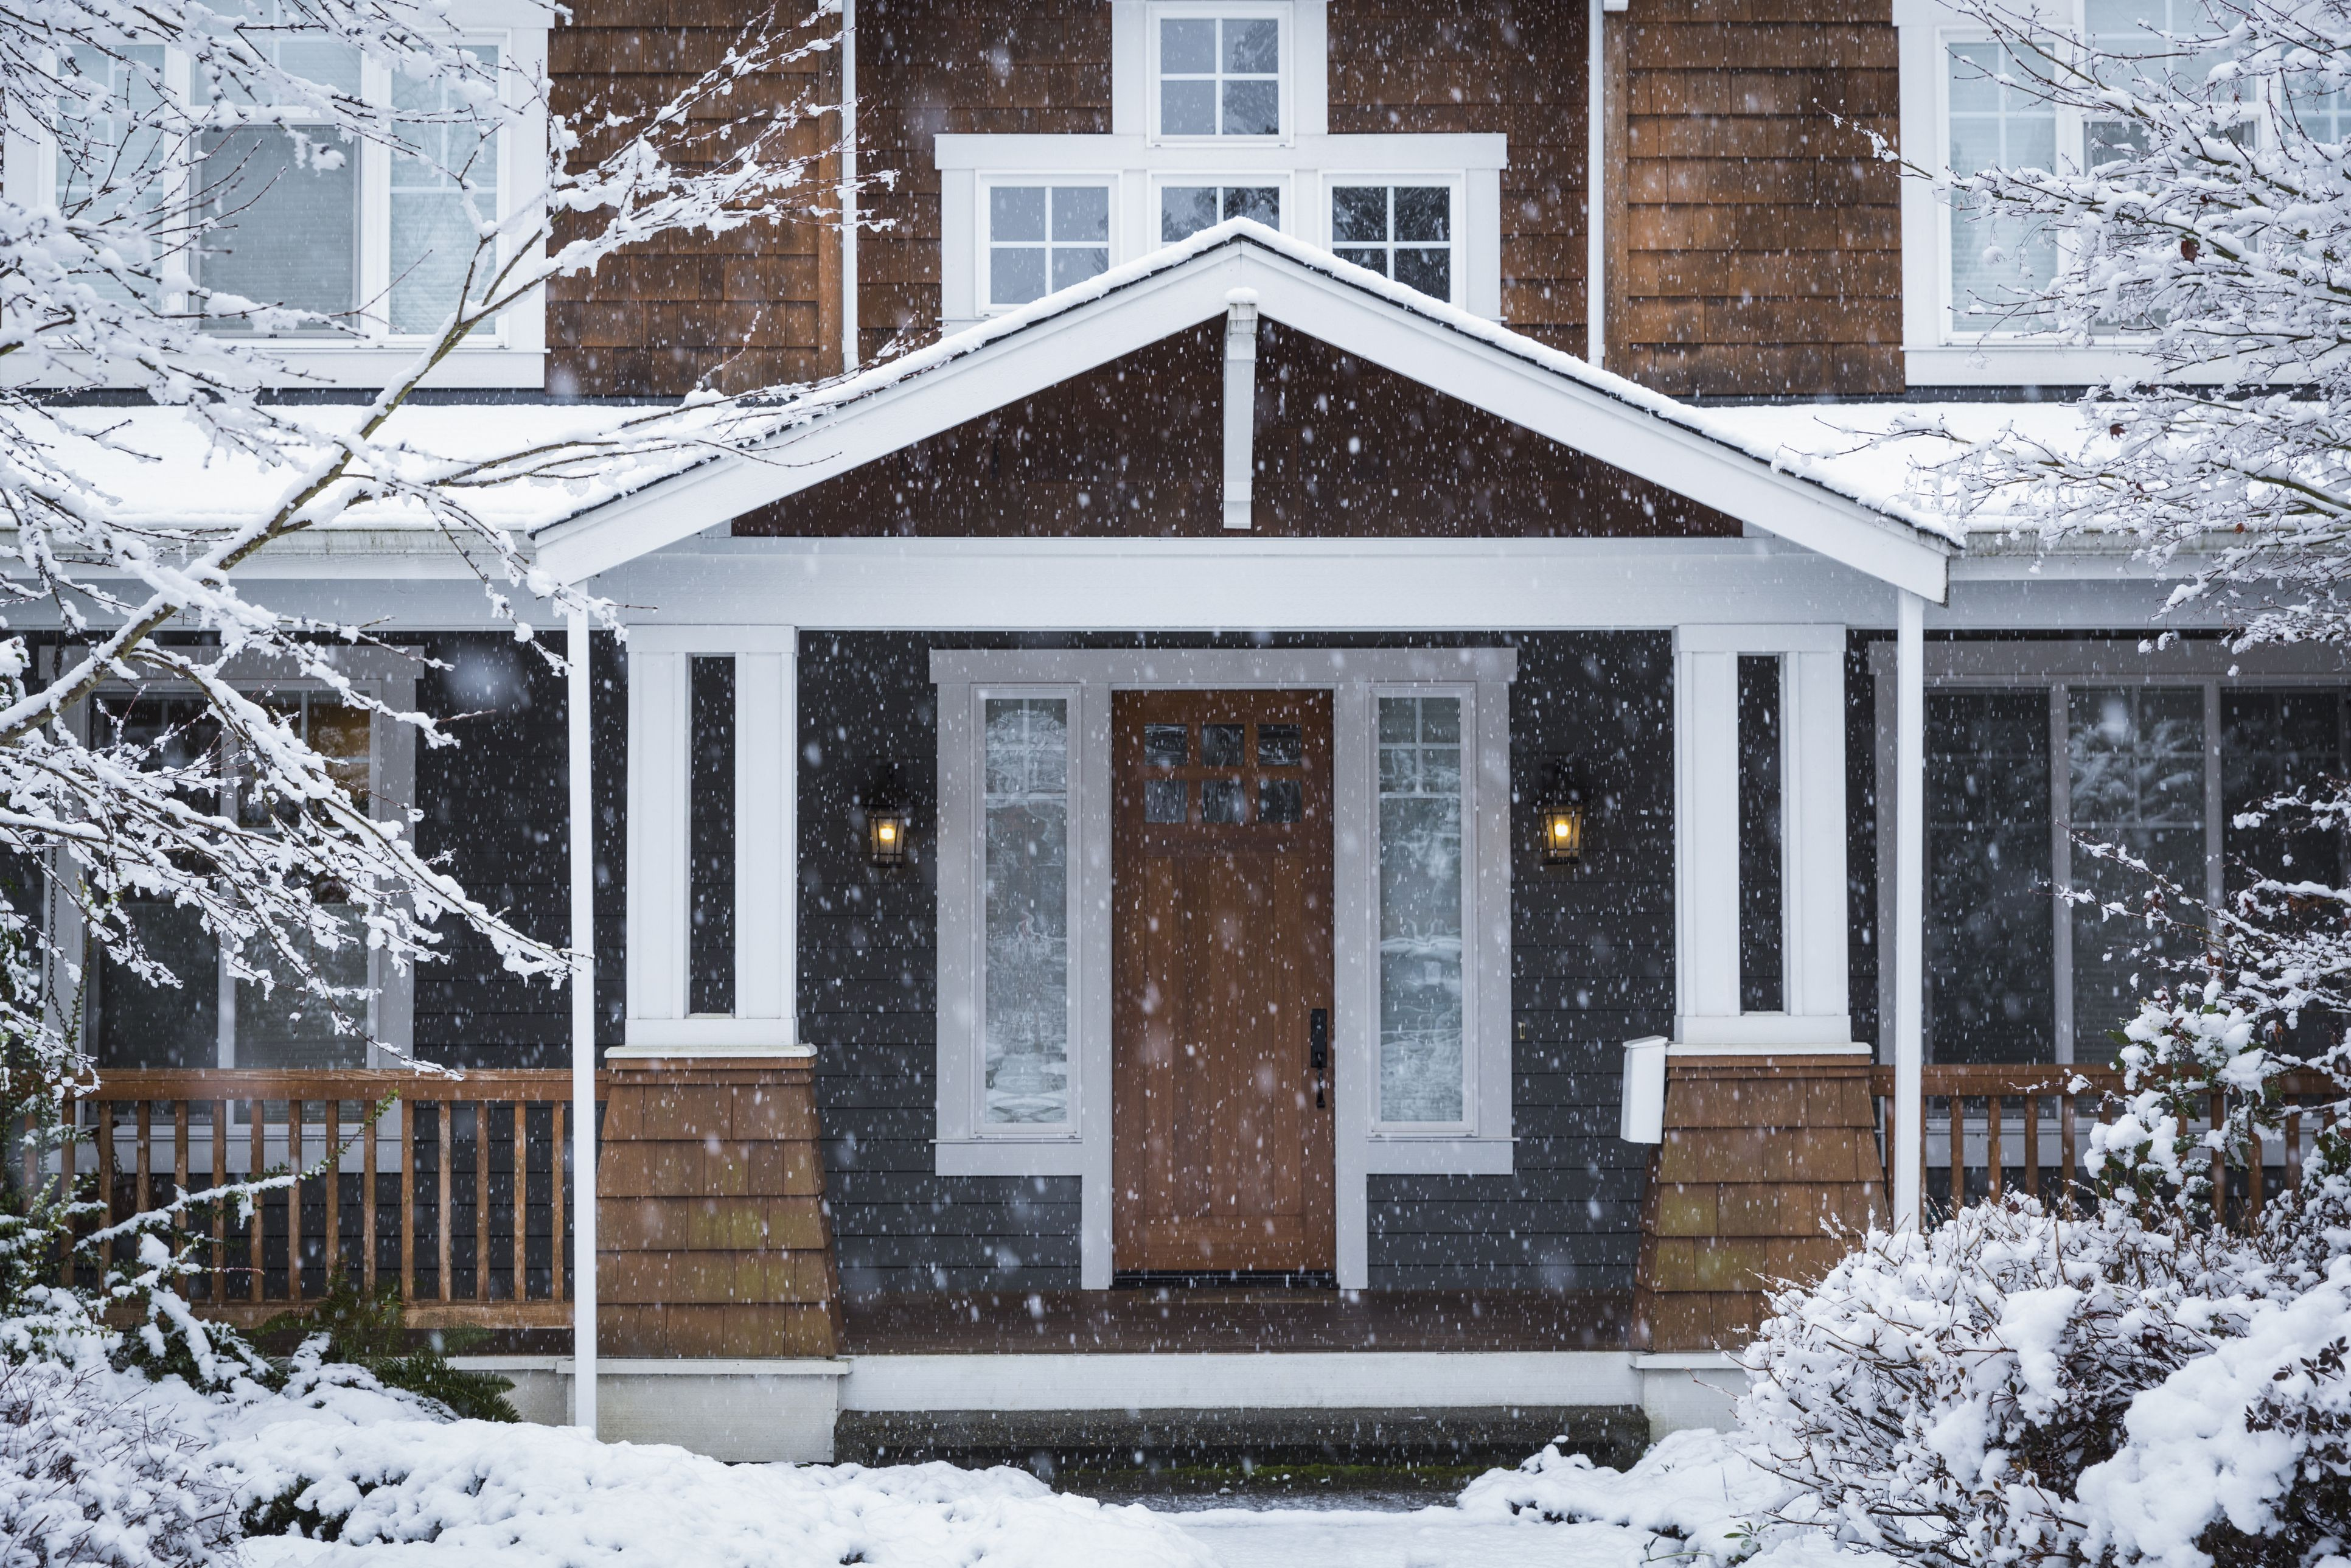 snow falling on house